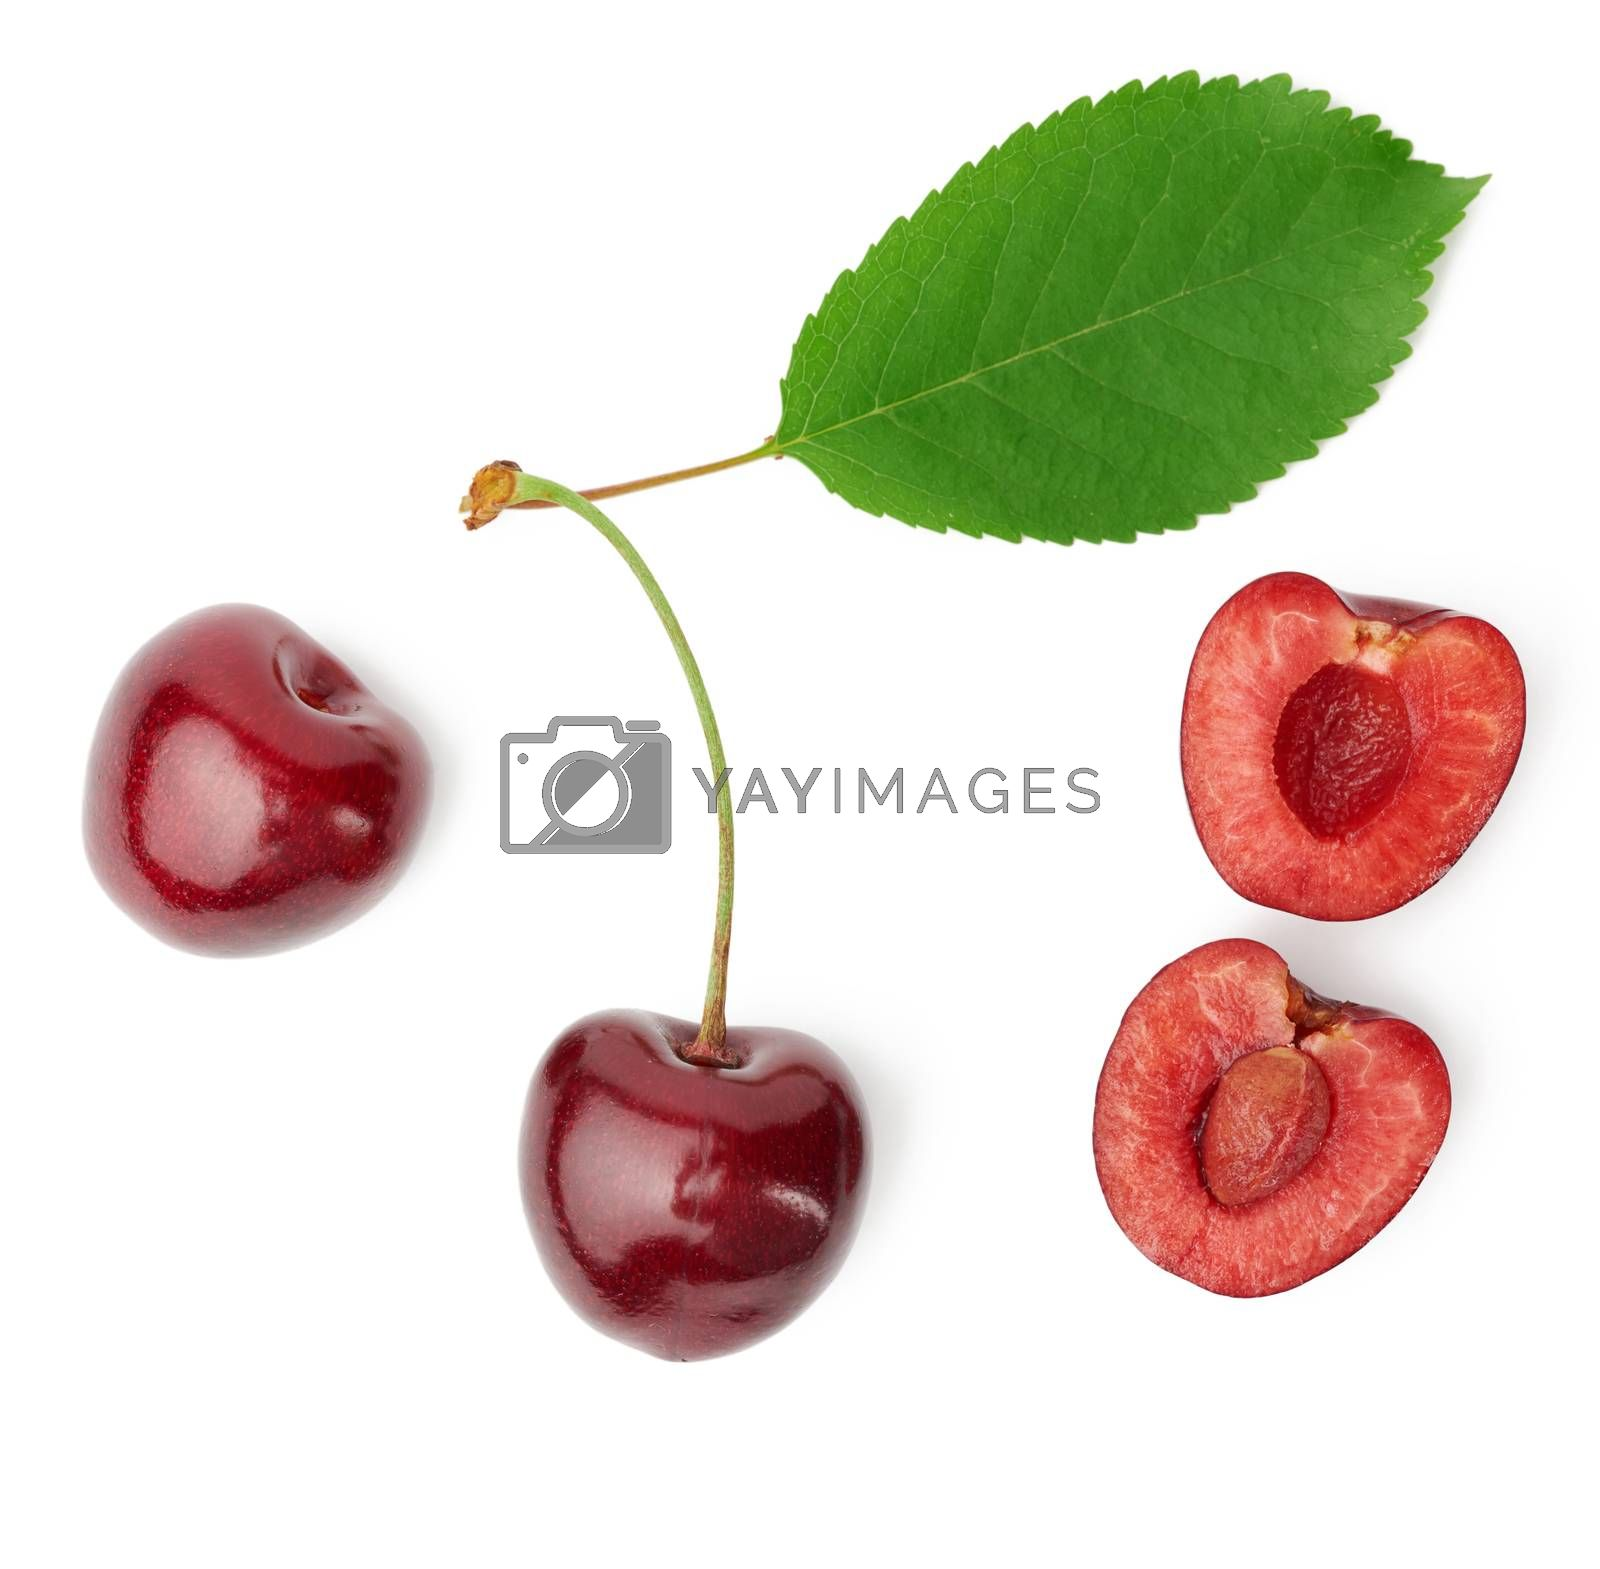 whole ripe red juicy sweet cherries and halves with pits isolated on a white background, top view